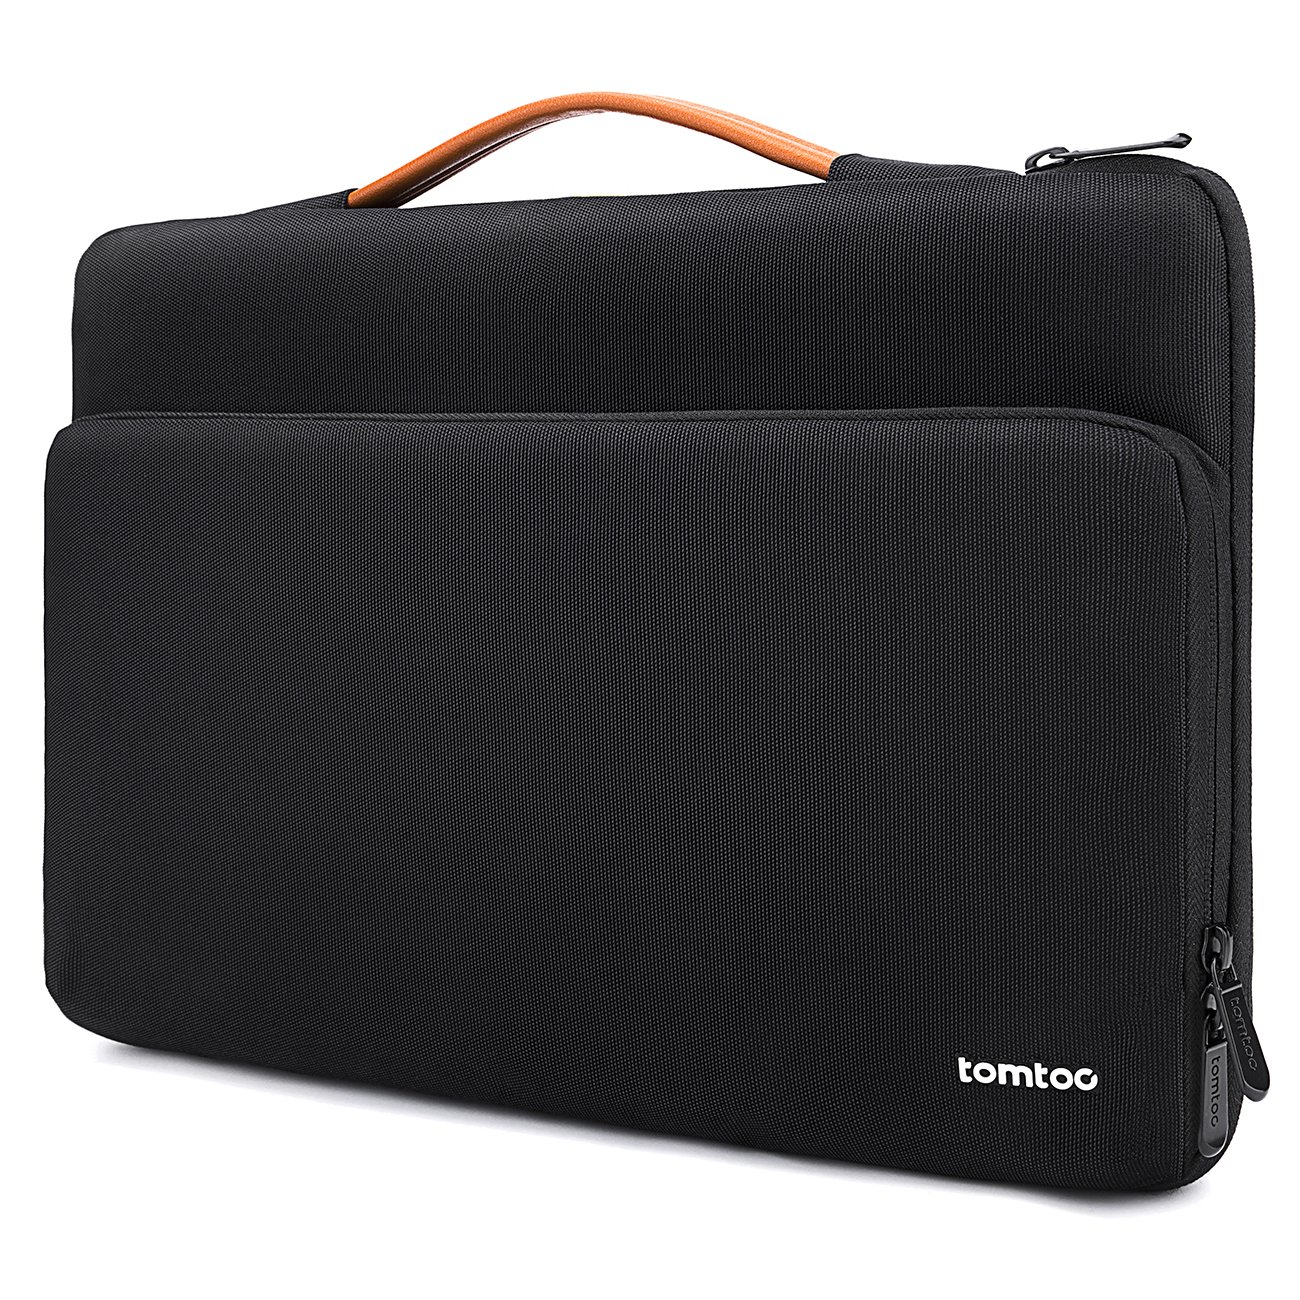 "tomtoc 360° Protective Laptop Case Handle Sleeve Fit for Lenovo ThinkPad 14 | 15"" MacBook Pro Touch Bar A1990 A1707 